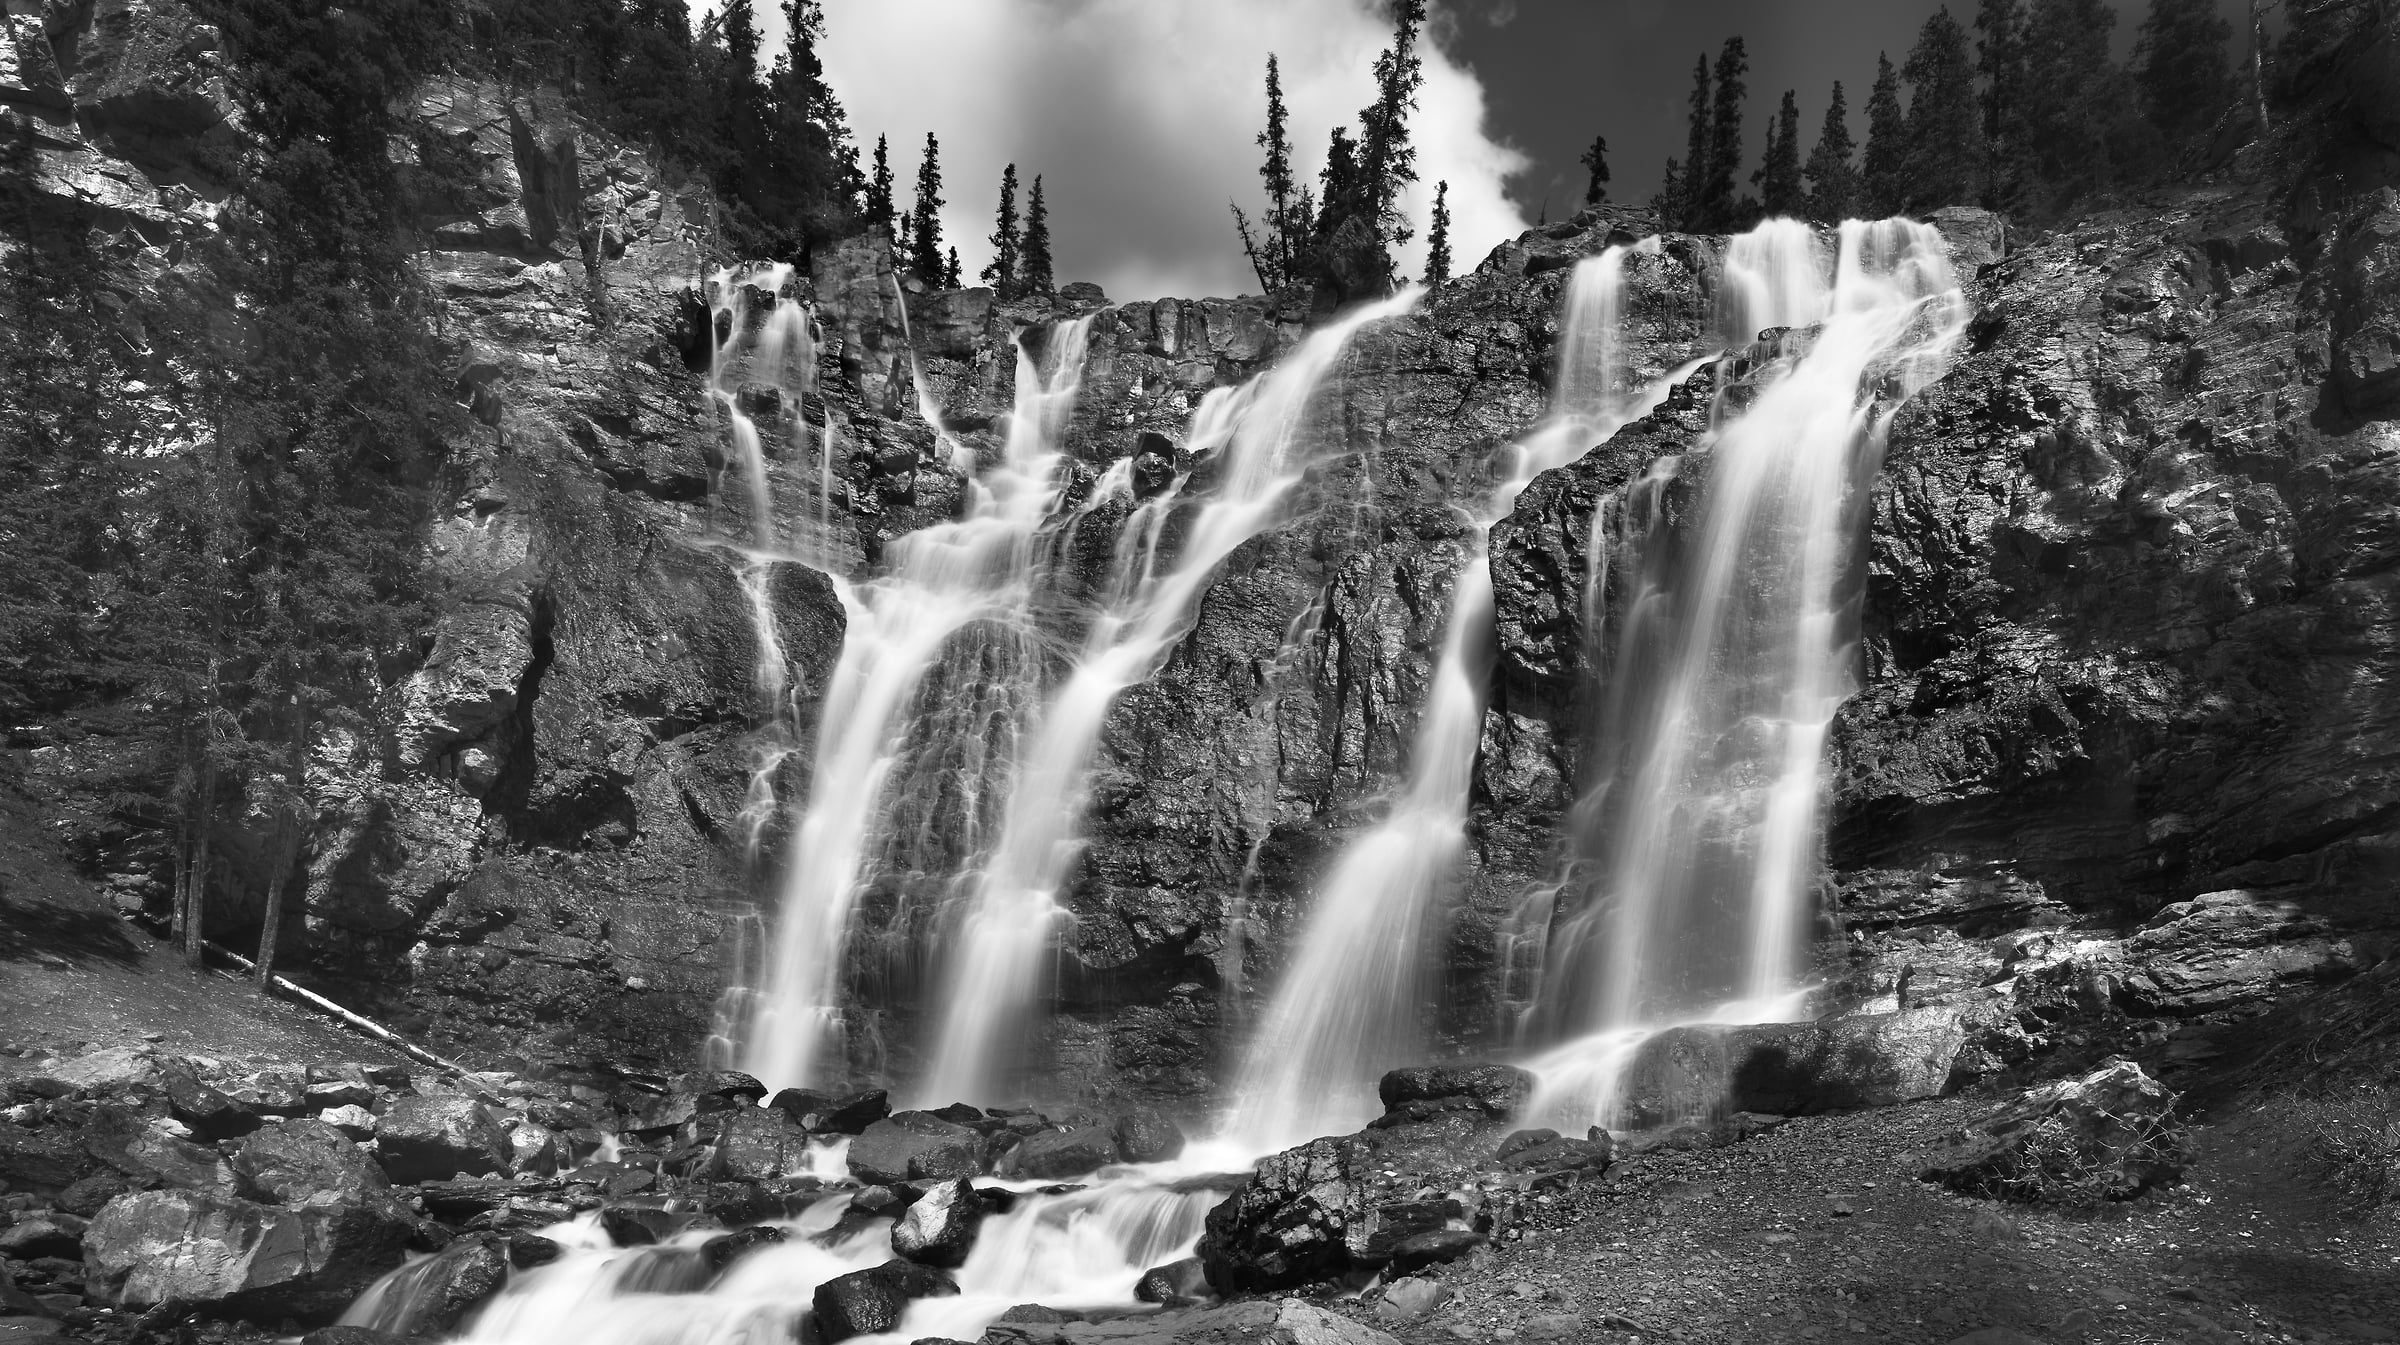 551 megapixels! A very high resolution, large-format VAST photo print of a waterfall in Jasper National Park; fine art nature photograph created by Steven Webster in Alberta, Canada